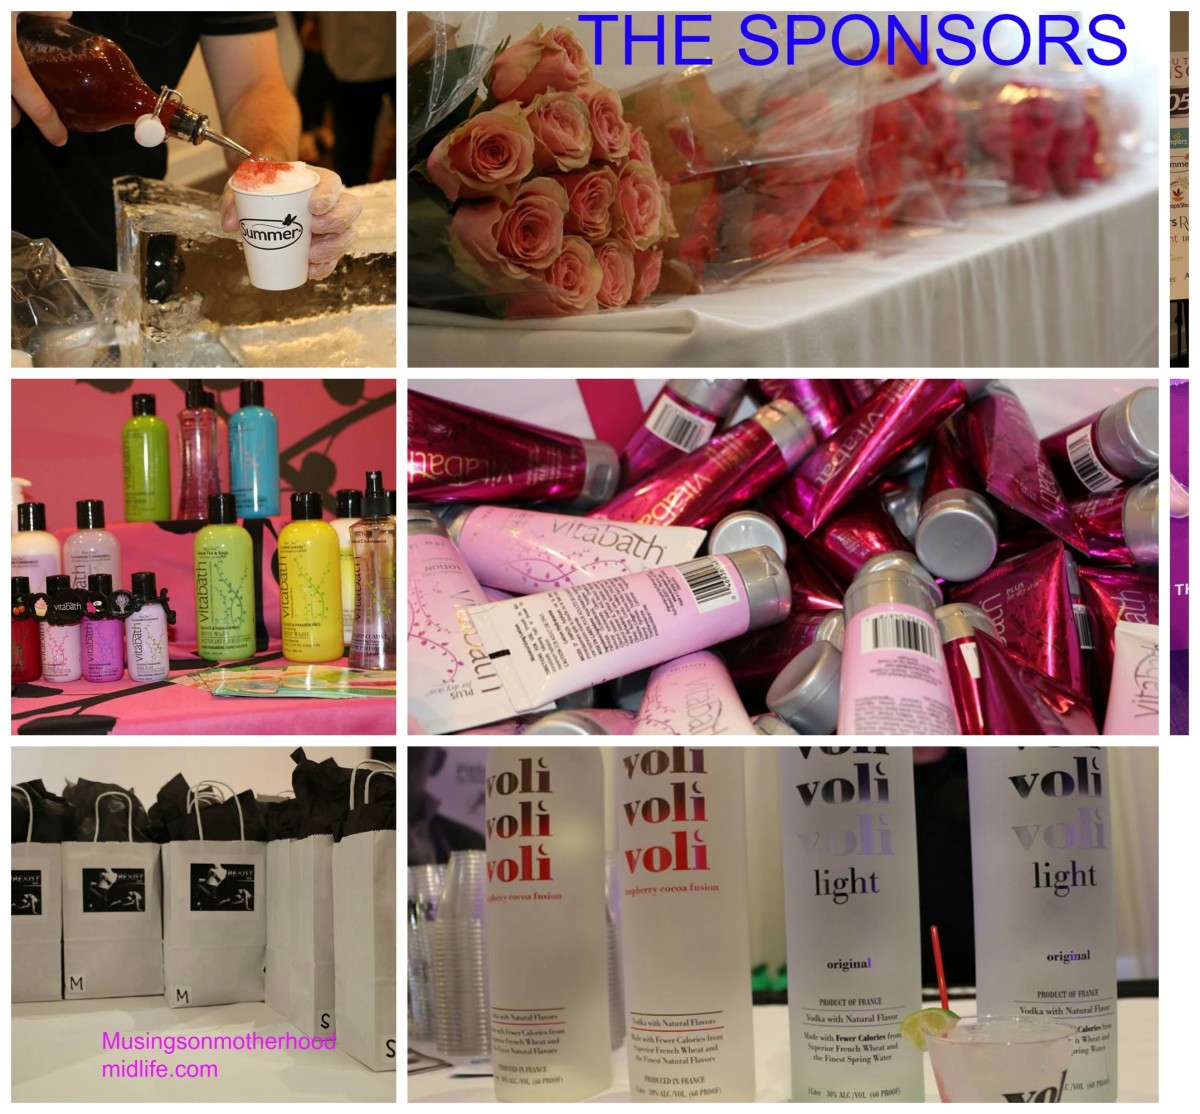 Getting Gorgeous sponsors